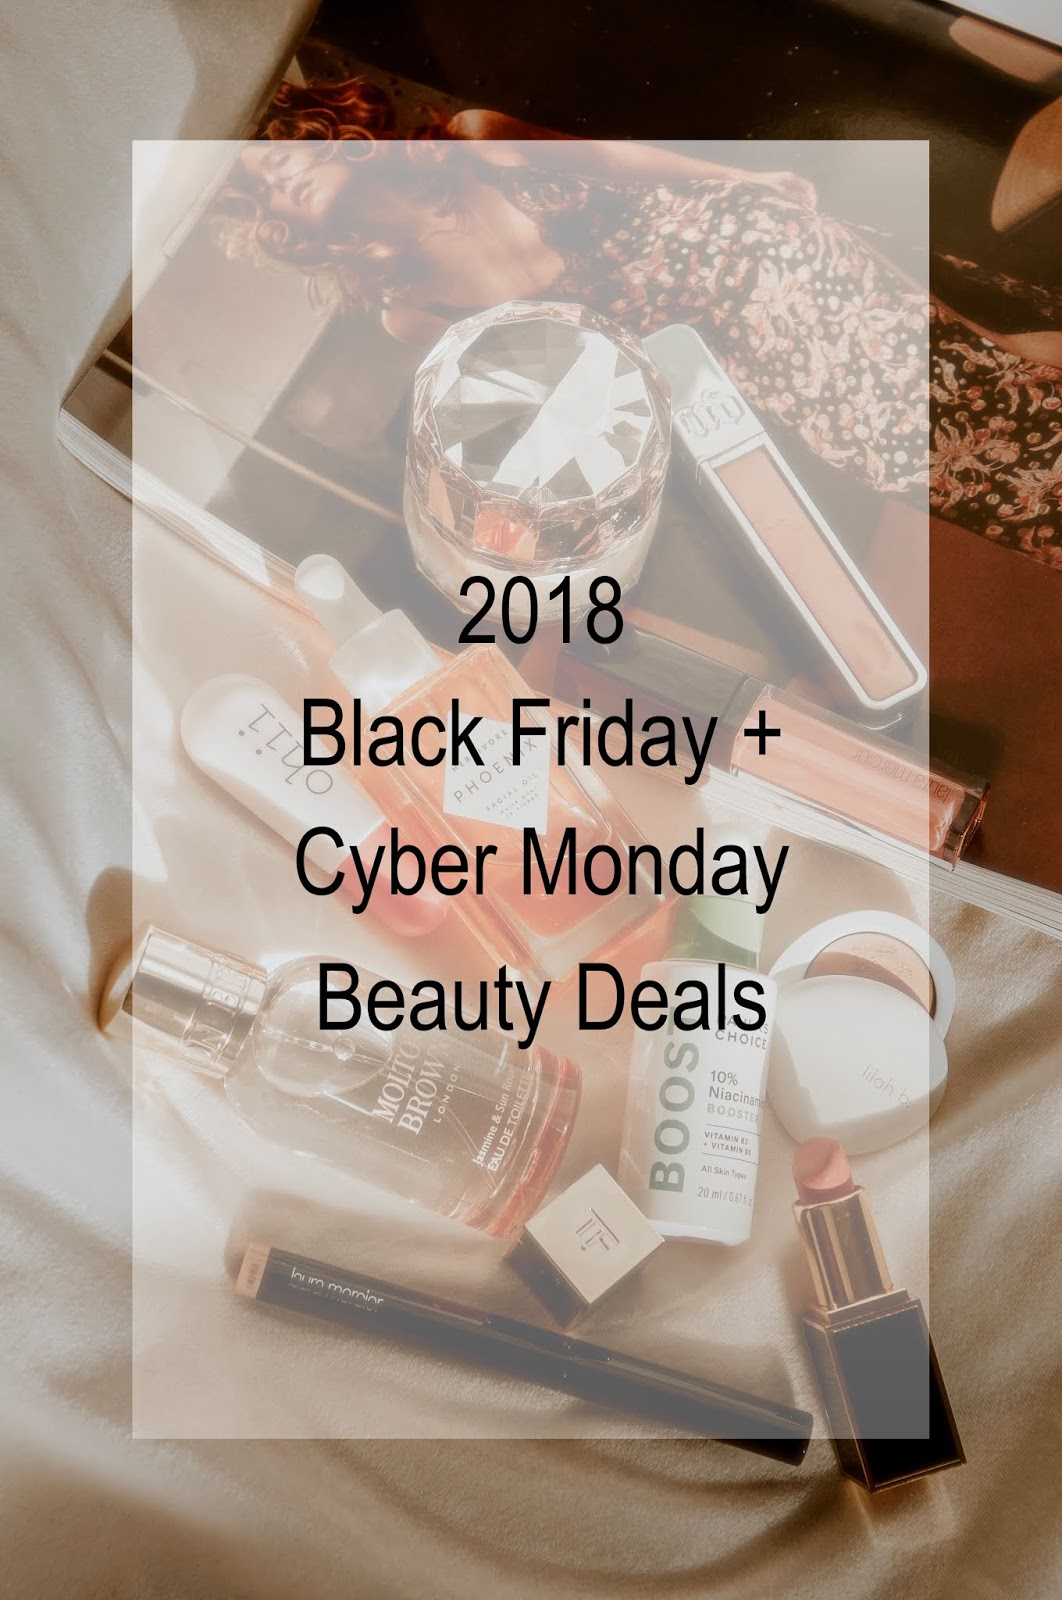 Black Friday + Cyber Monday Deals 2018